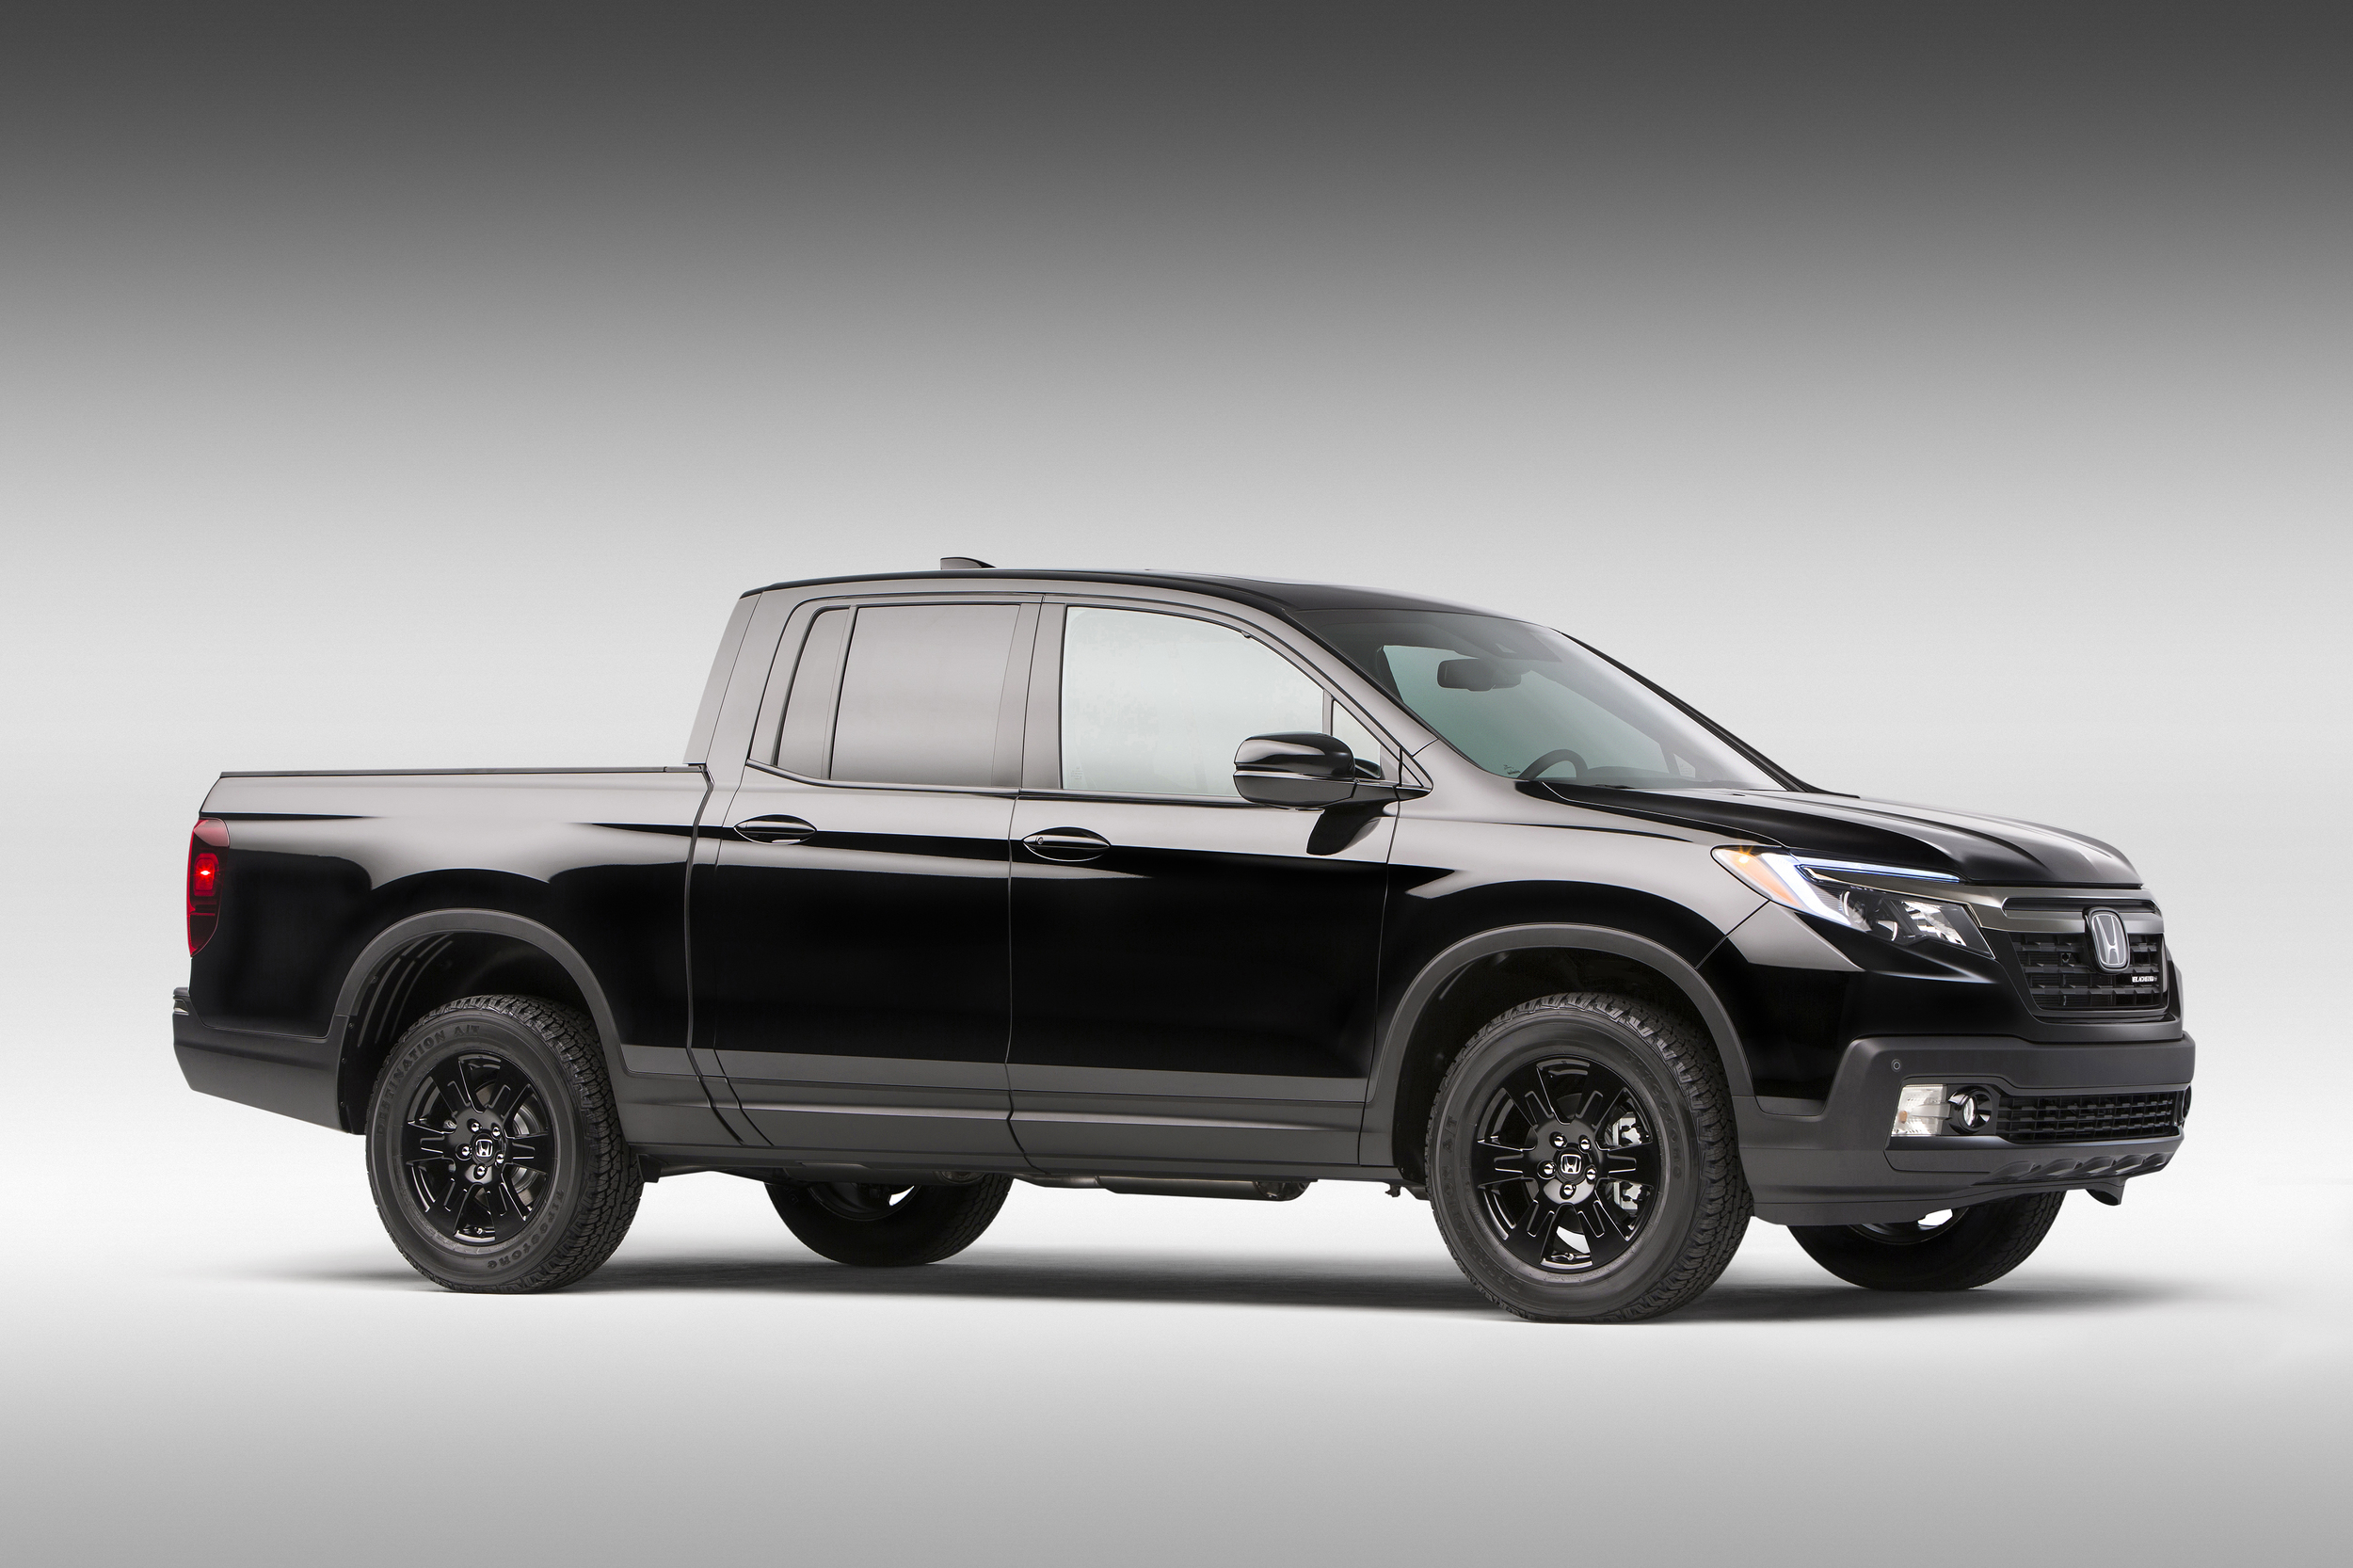 Honda Ridgeline Cost Best New Cars For - 2018 honda ridgeline invoice price